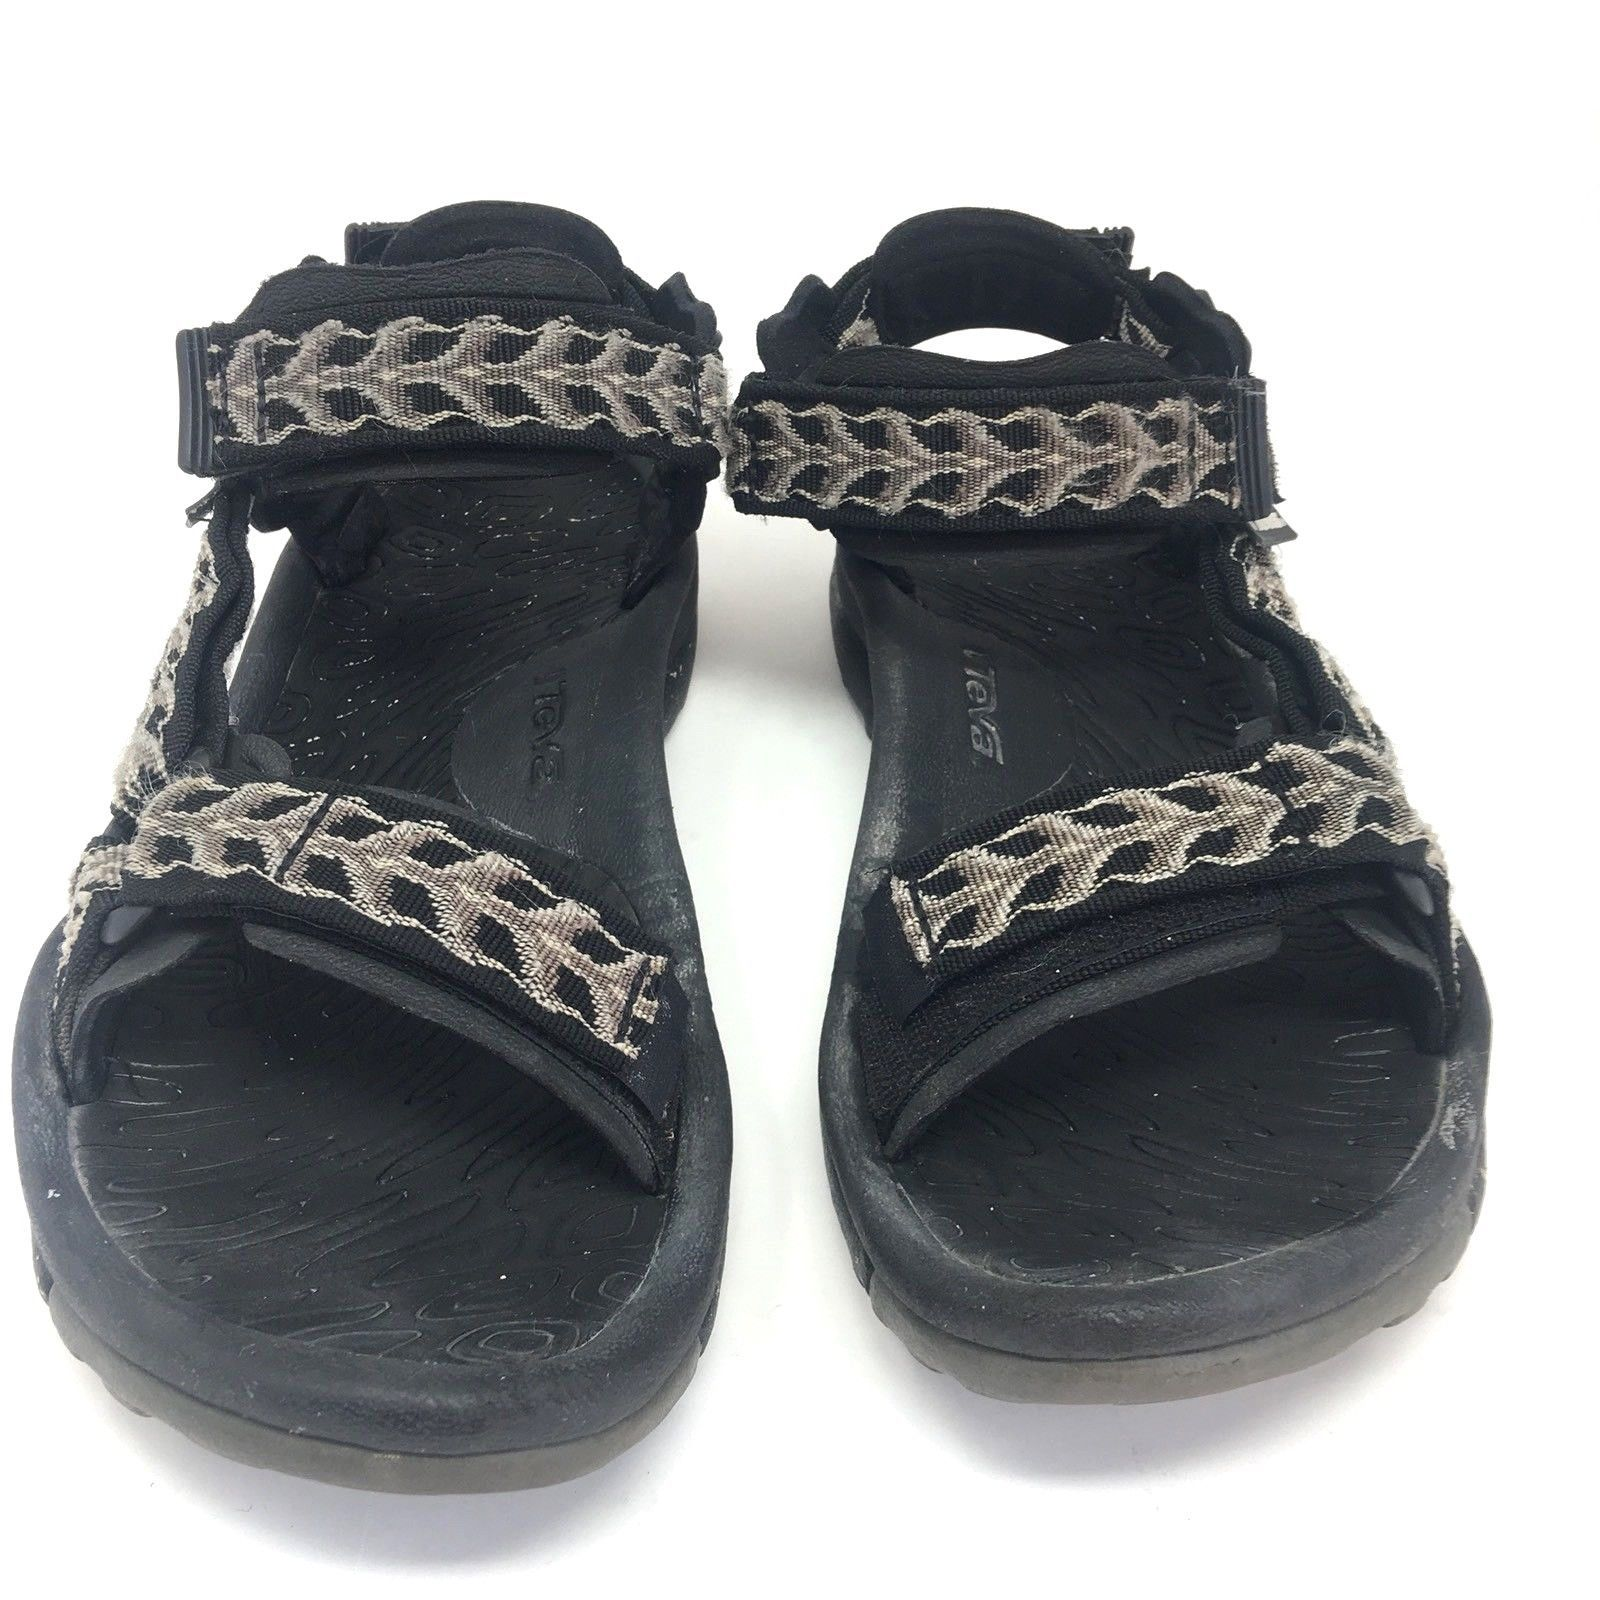 708c01d8f Men s Teva Terra Fi 6673 Sport Water Strap and 50 similar items